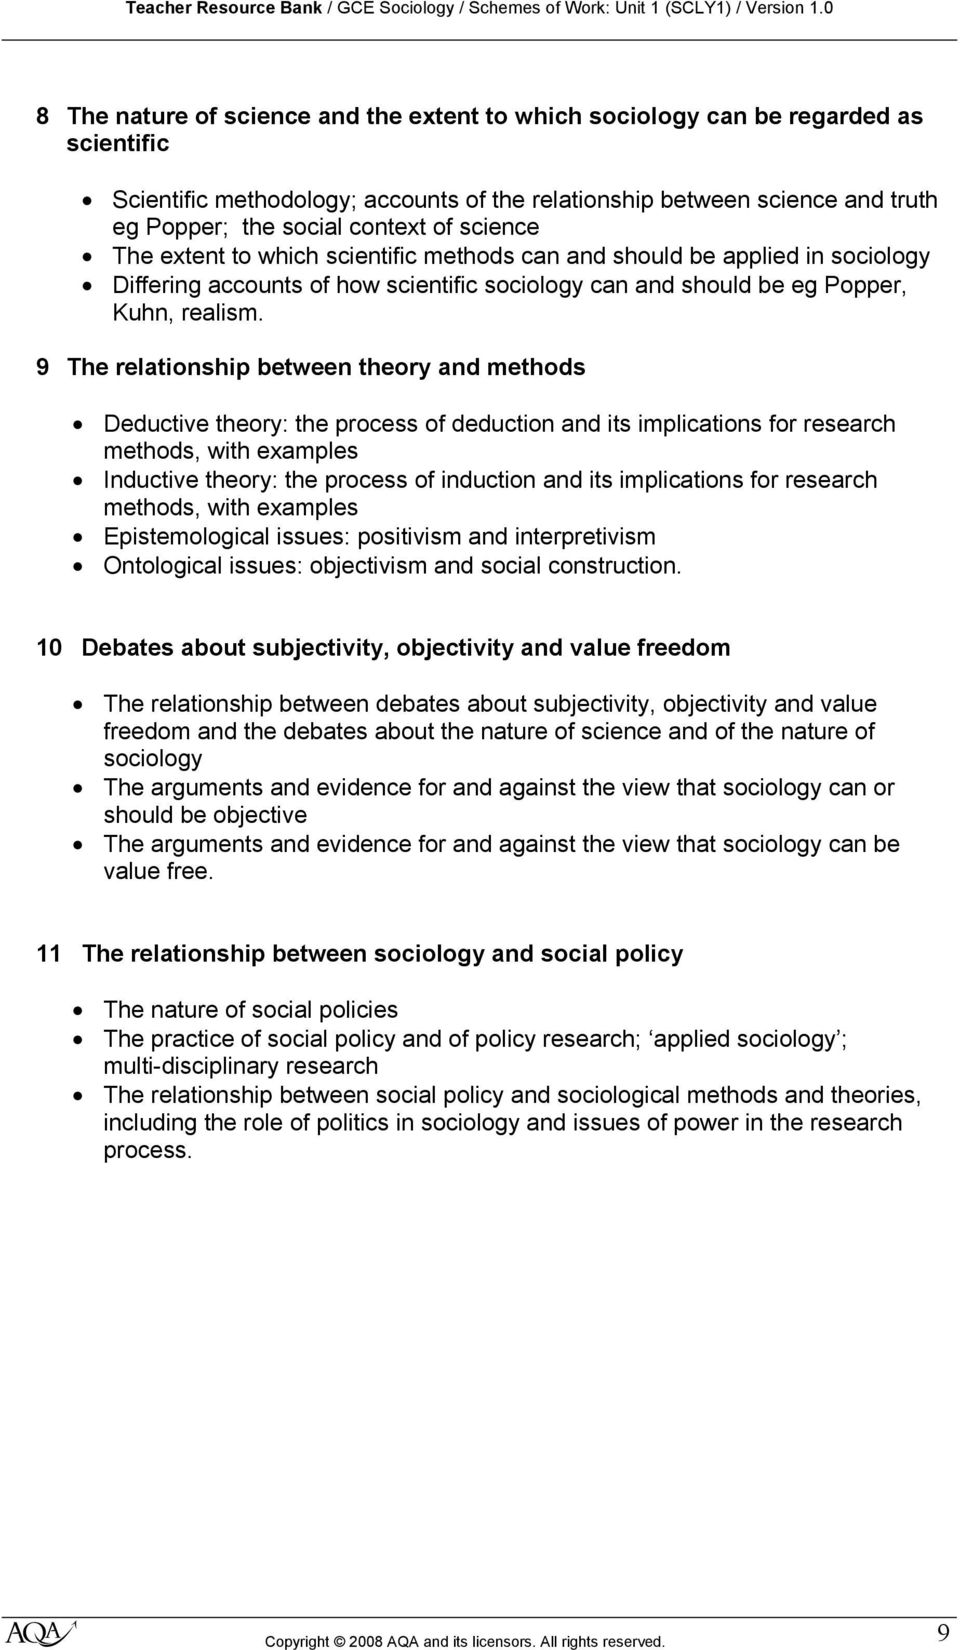 9 The relationship between theory and methods Deductive theory: the process of deduction and its implications for research methods, with examples Inductive theory: the process of induction and its